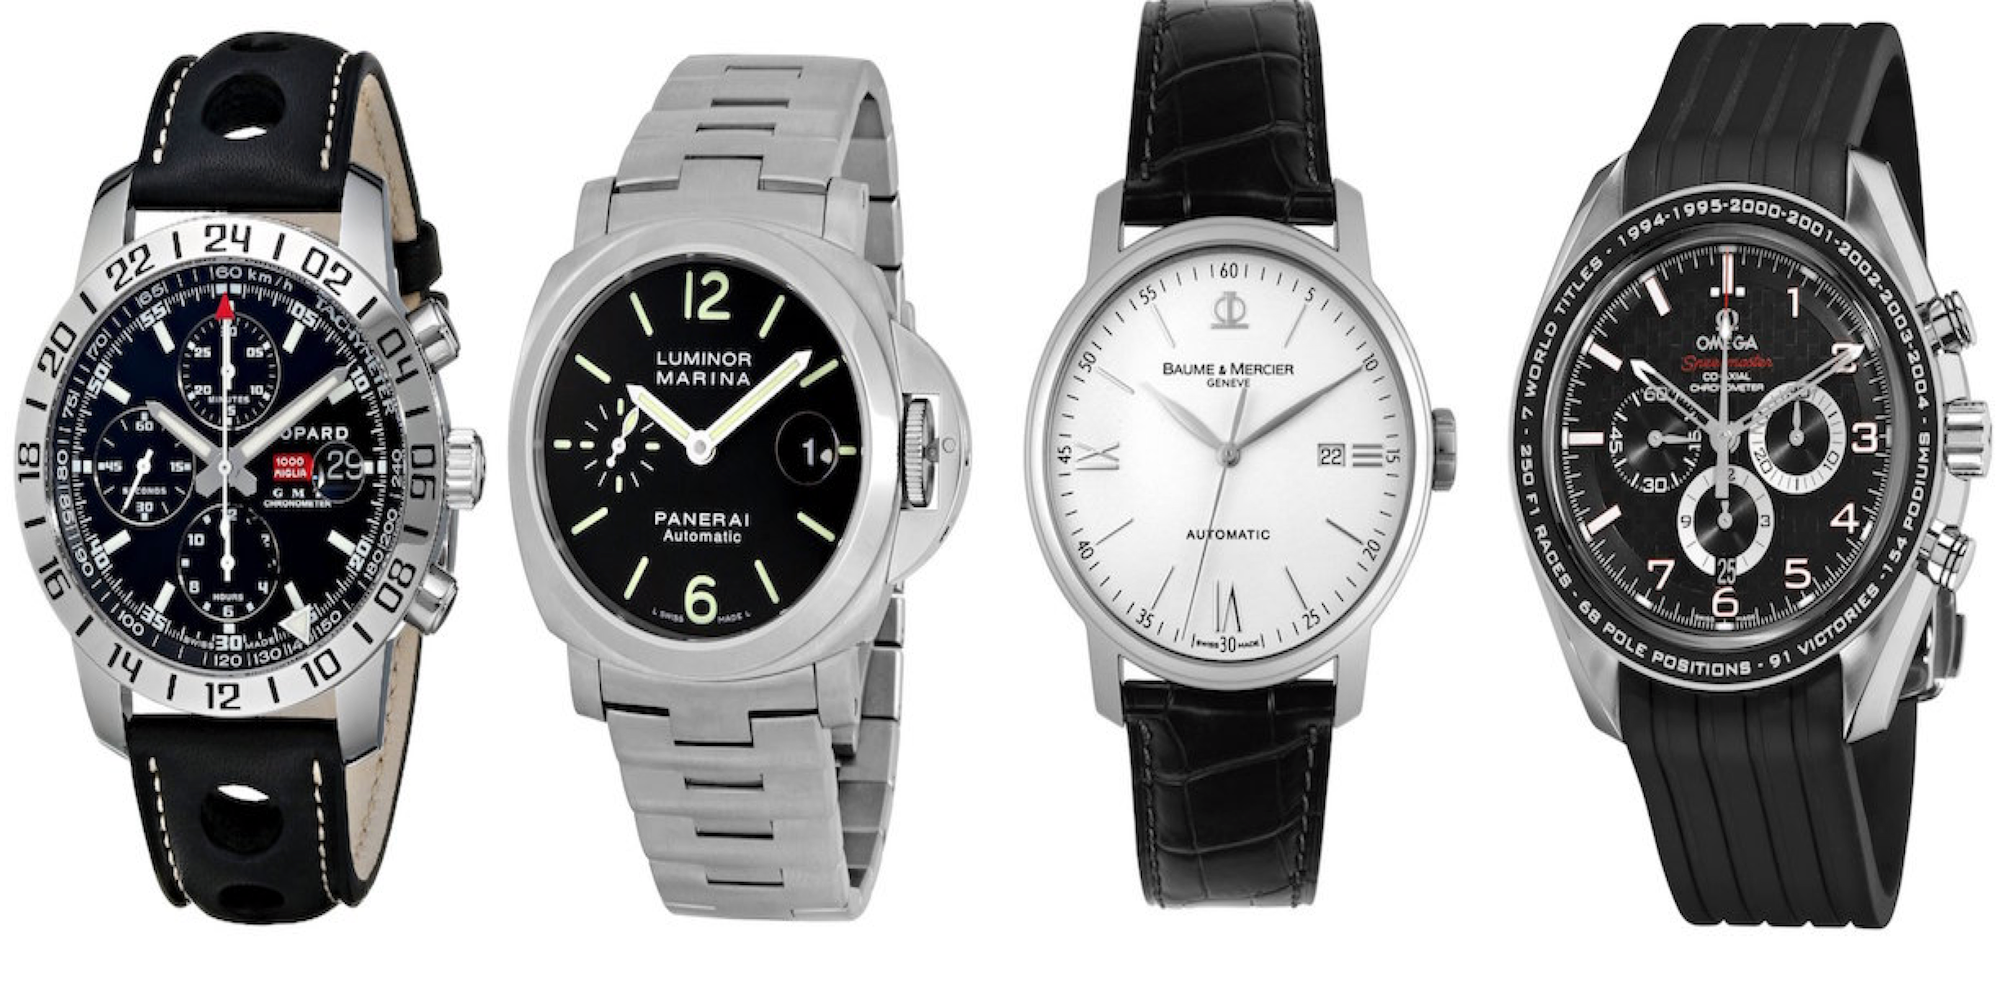 Cyber Monday Deals on Men Watches